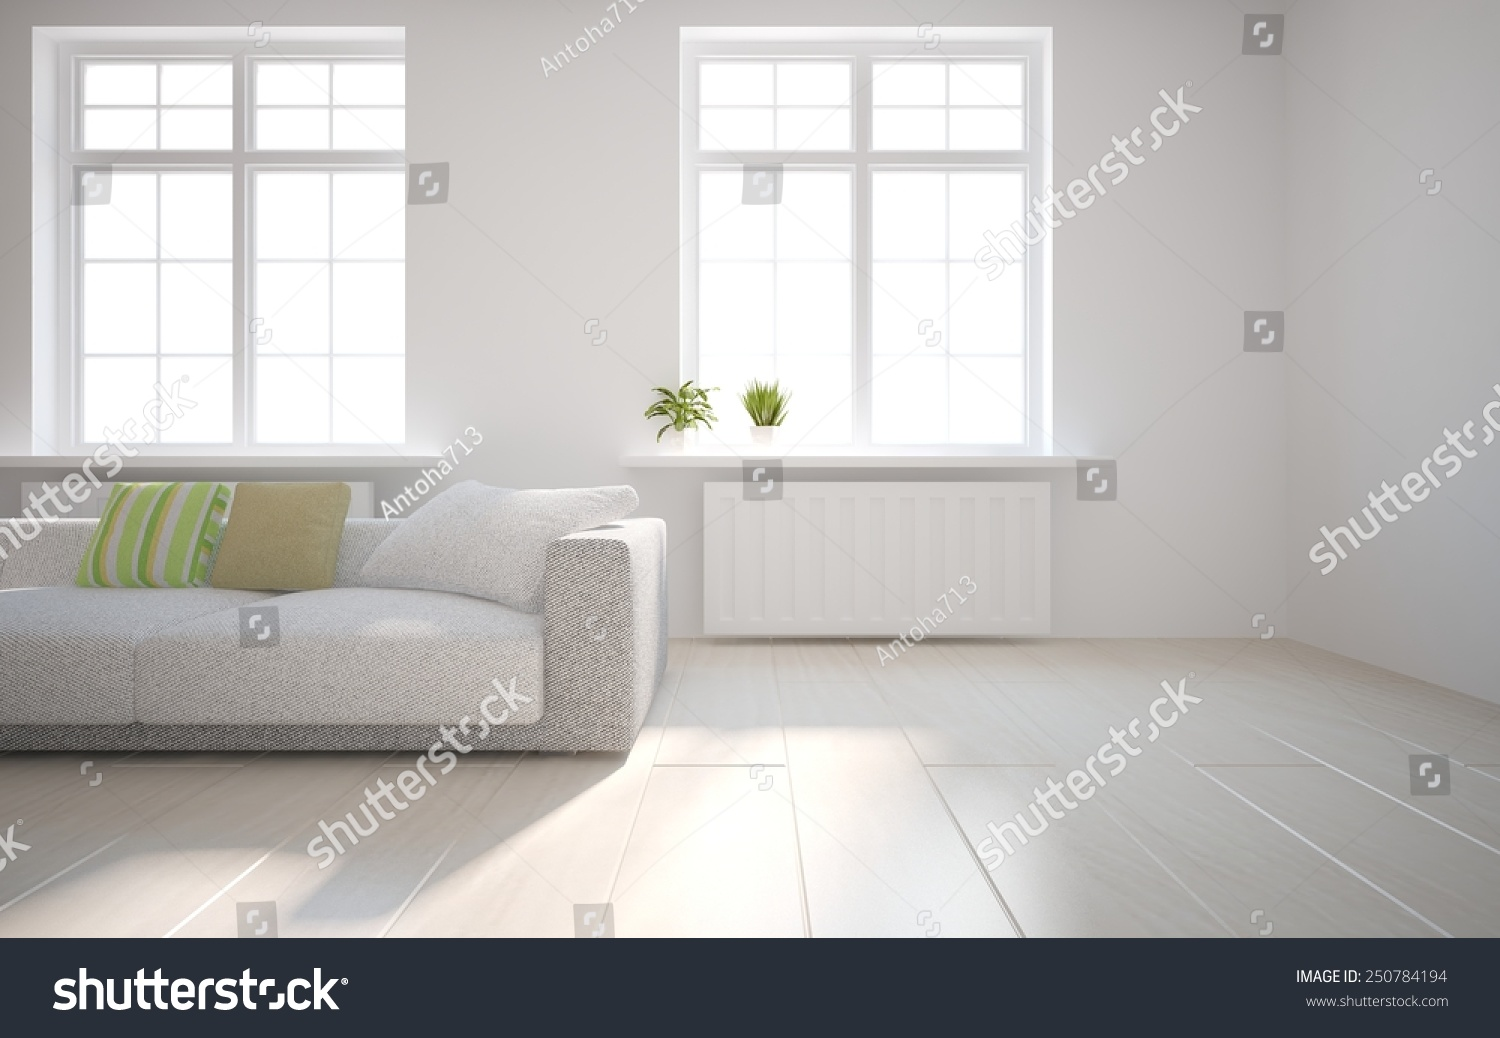 white empty interior concept with flower on a window 3d rendering